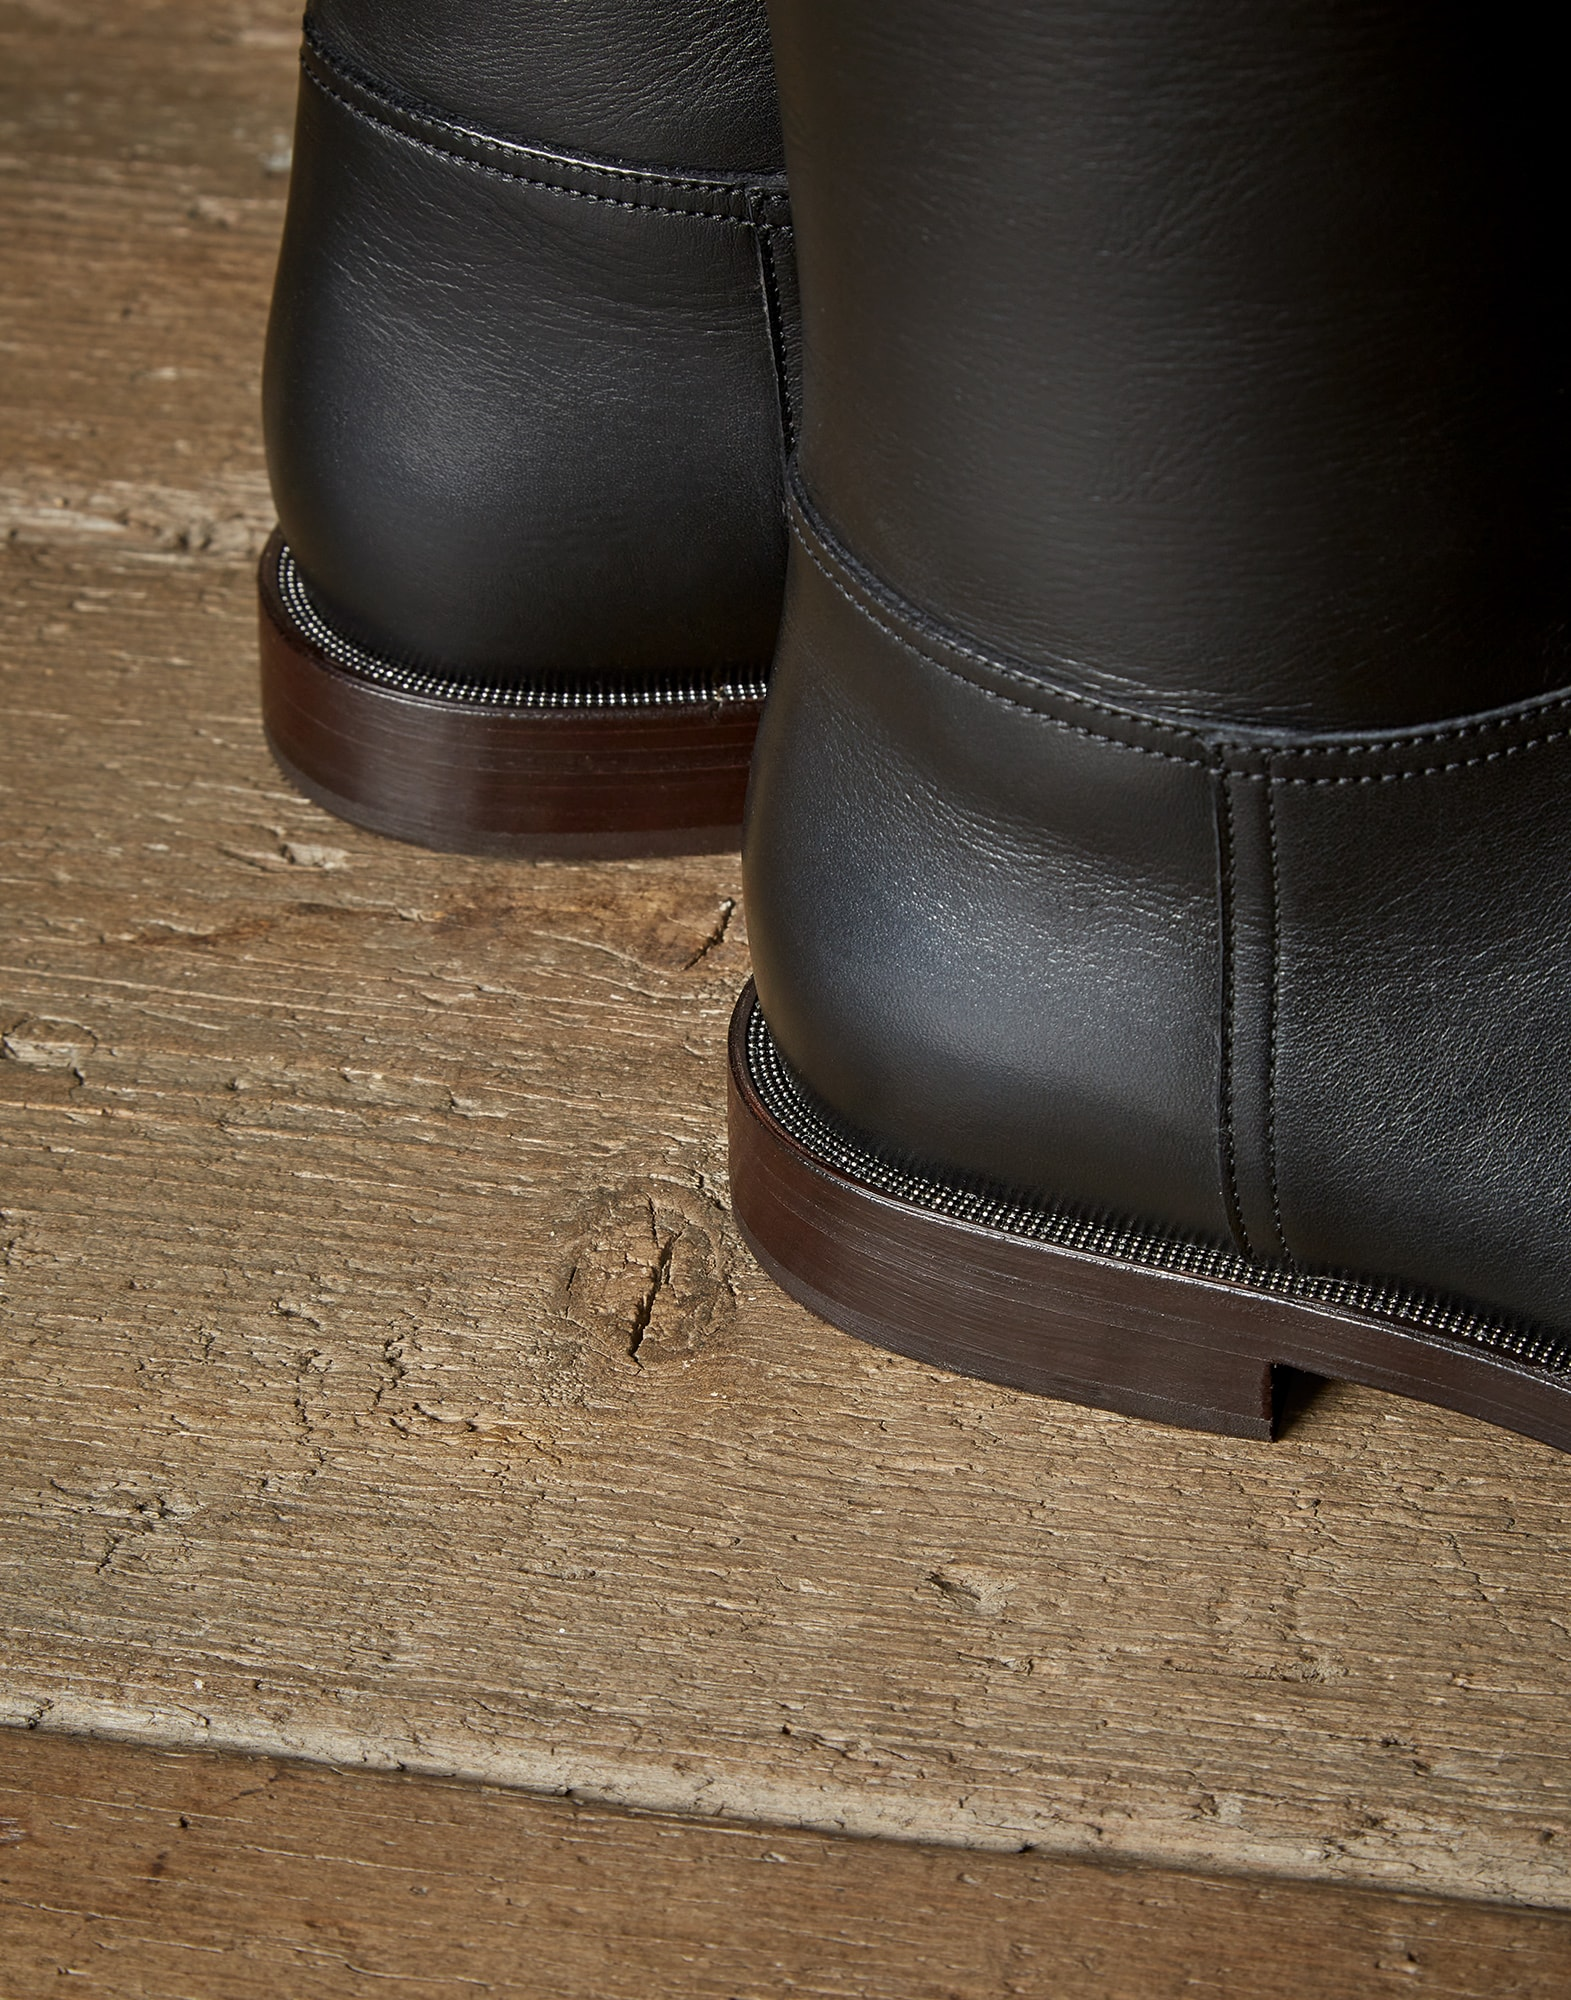 High-Boots Black Woman 2 - Brunello Cucinelli